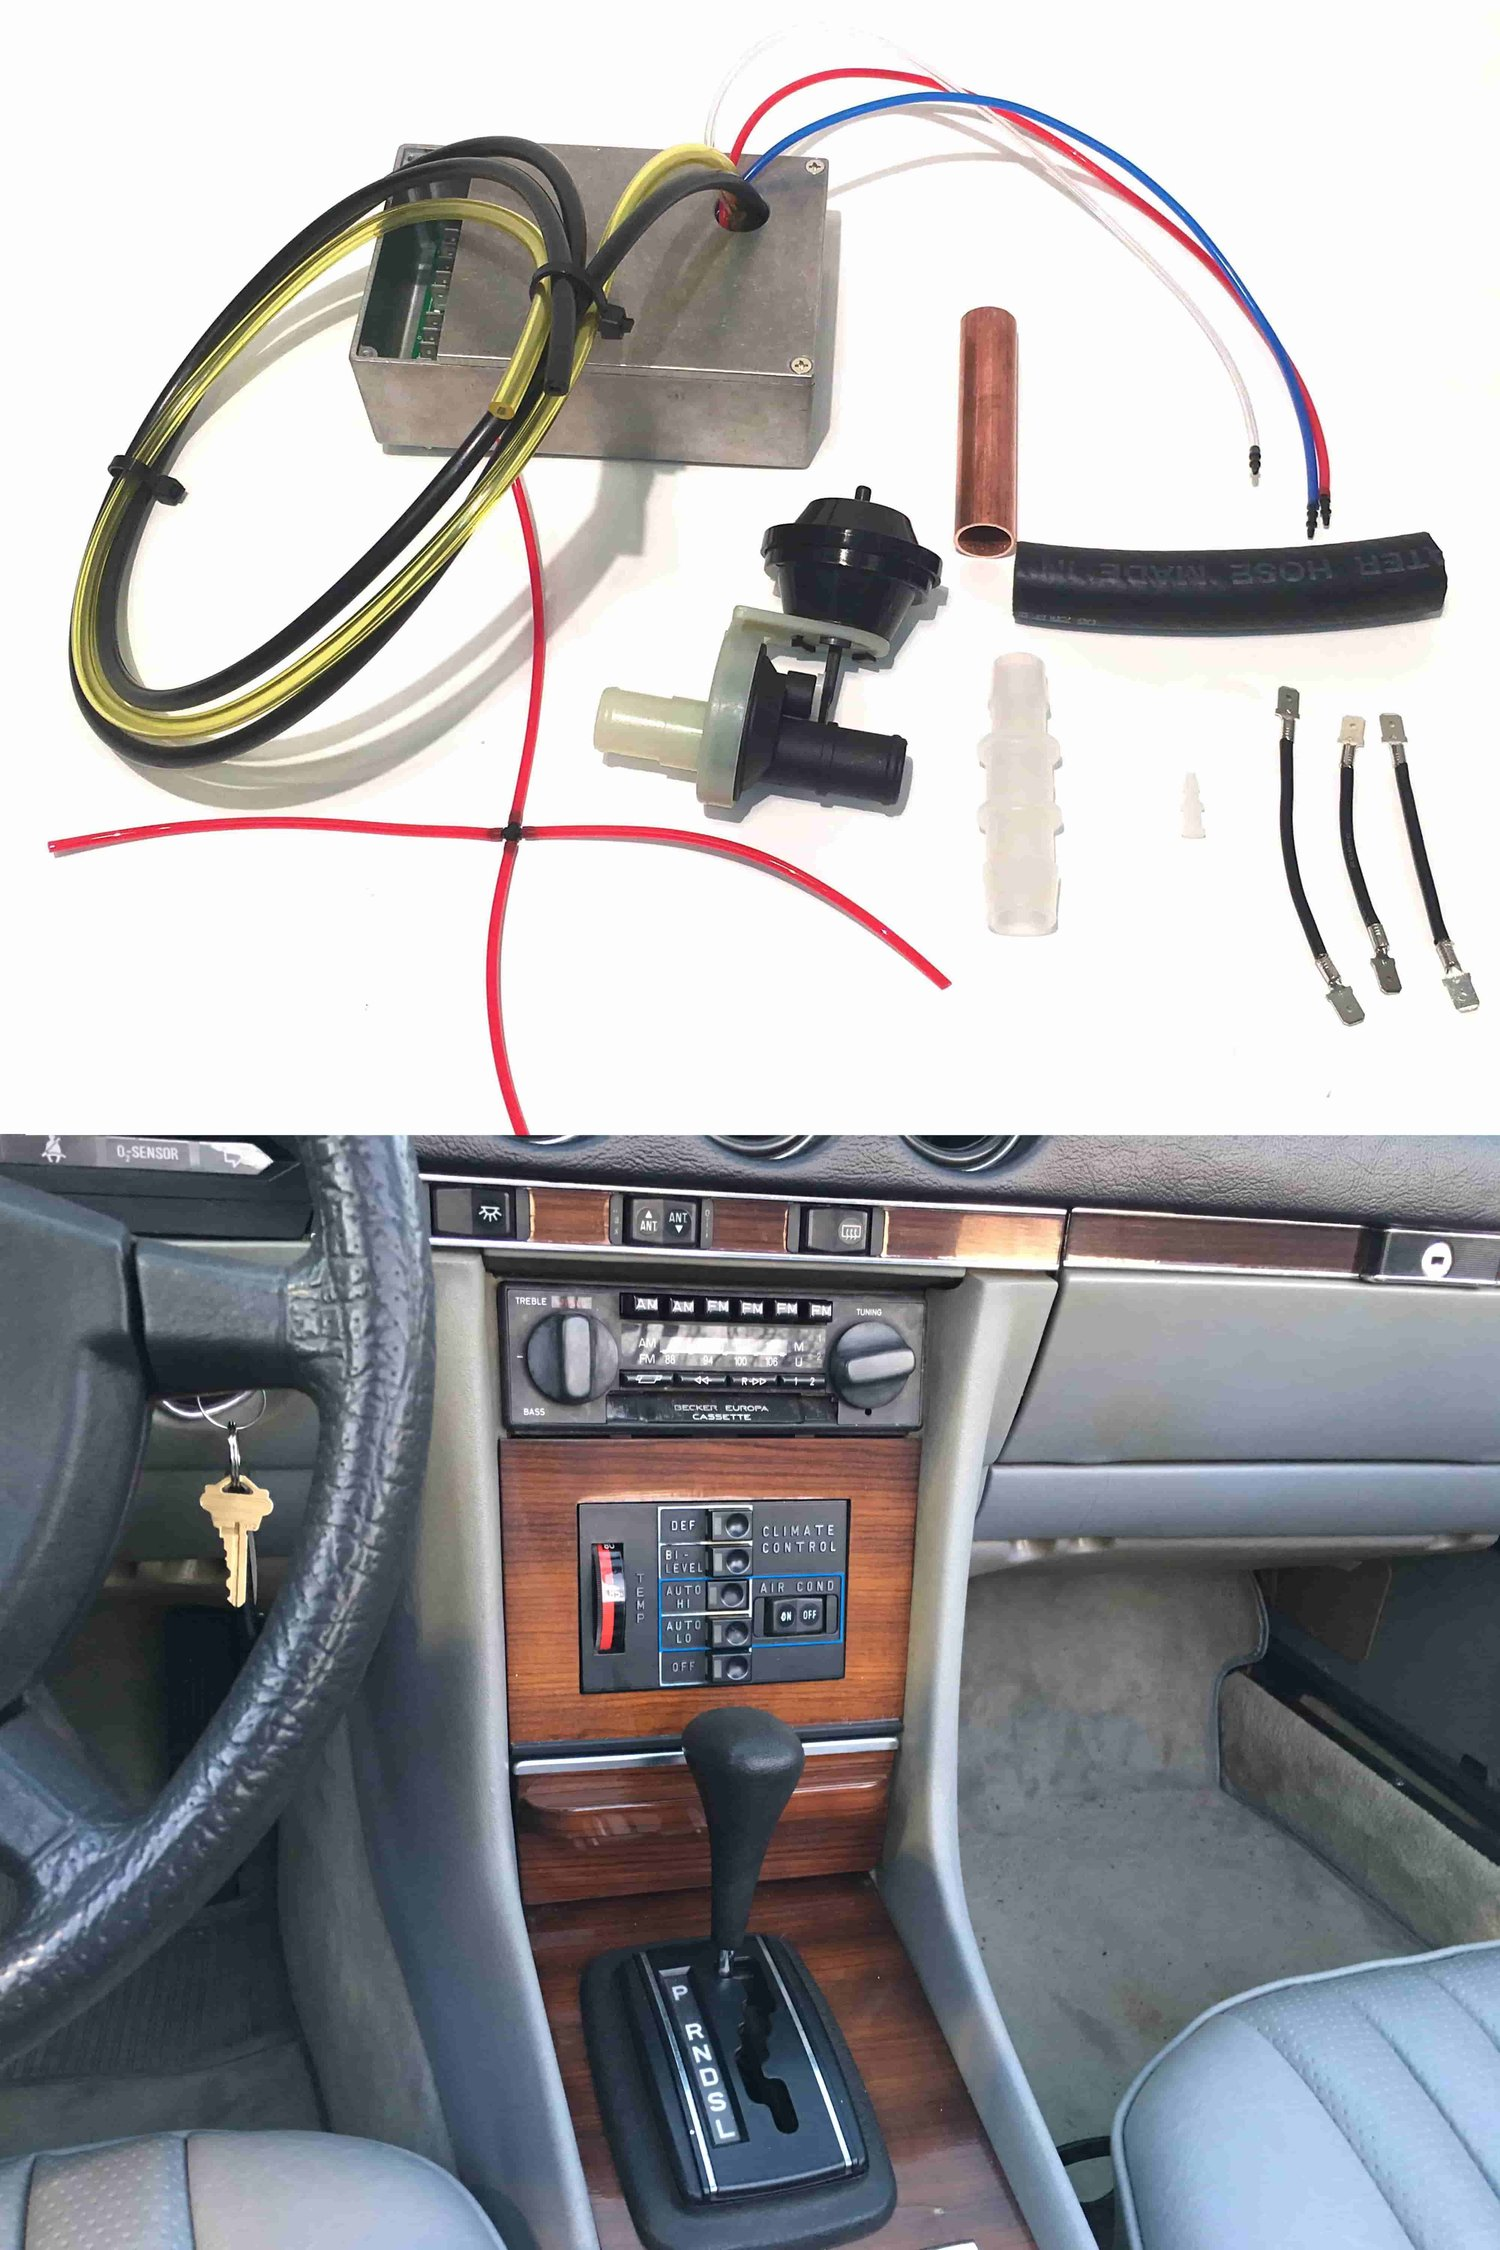 Mercedes Fix Engine Wiring Harness Rebuild Service For Mercedesbenz Automatic Climate Control Ii Update Kit